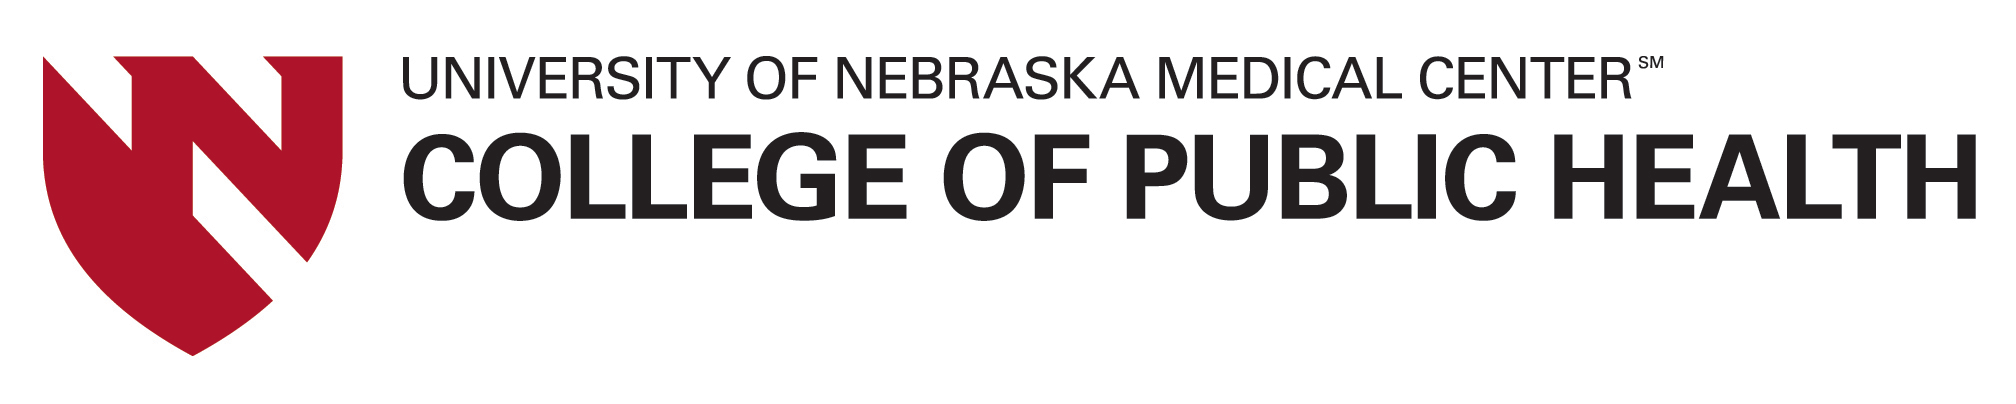 The University of Nebraska Medical Center College of Public Health